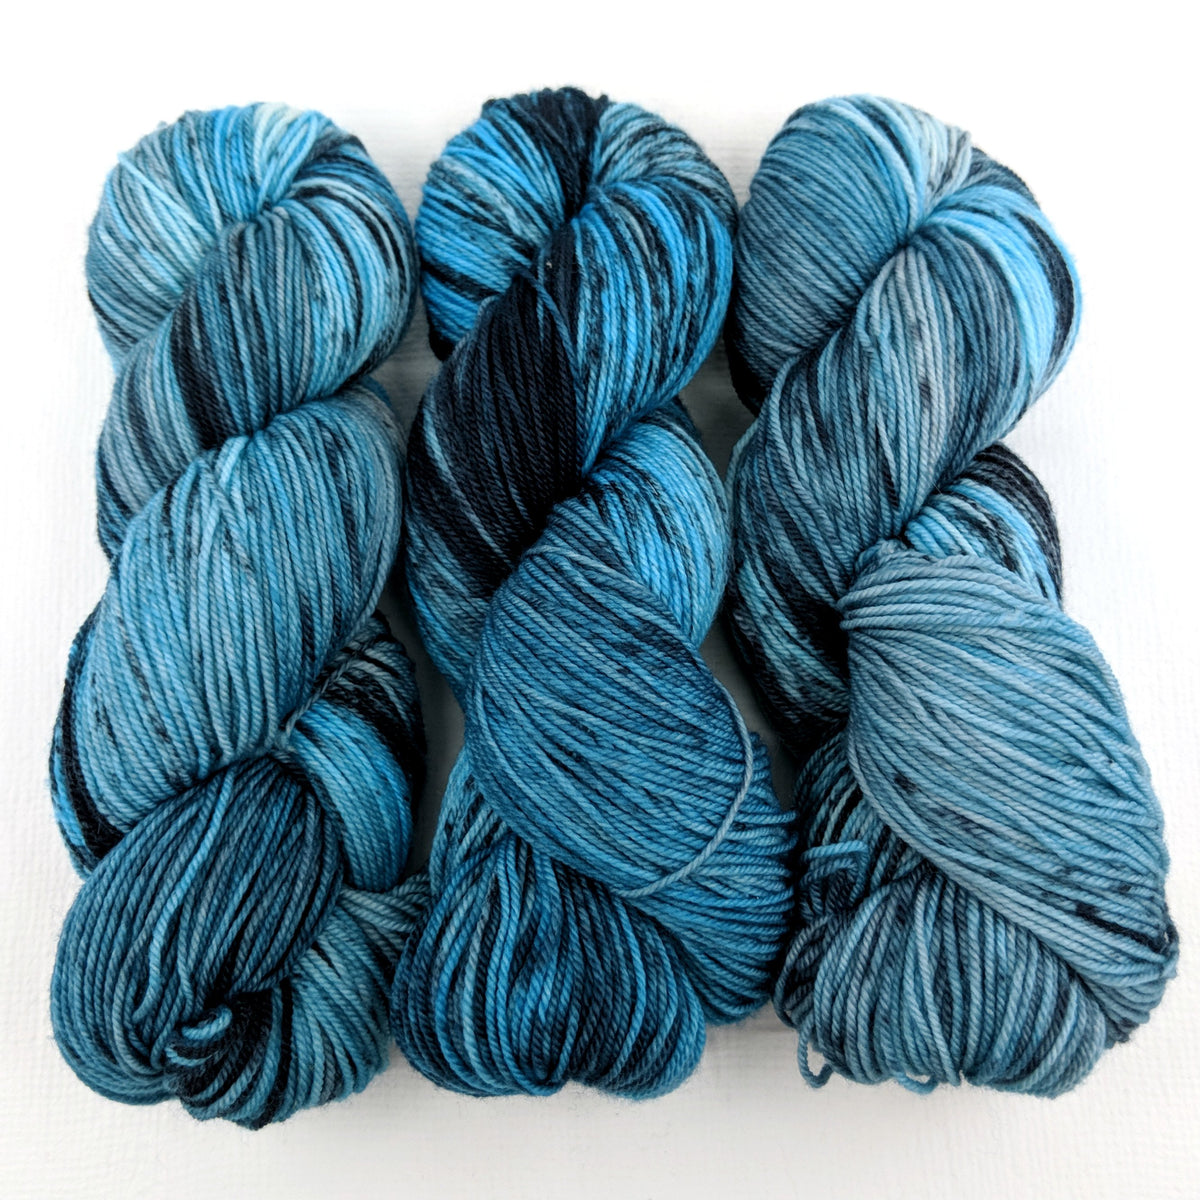 Chinook Arch in Lace Weight